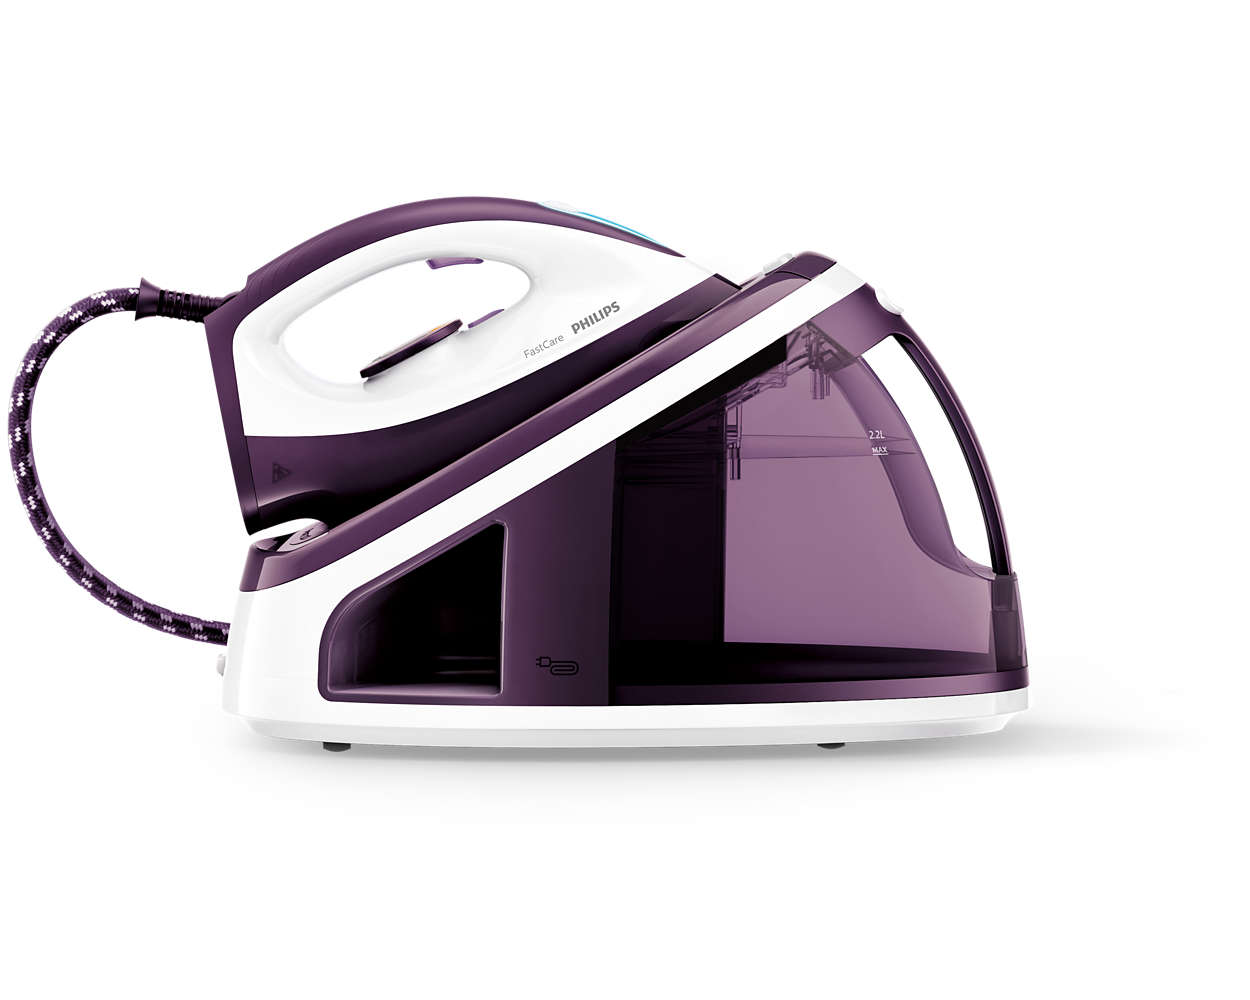 Fast and convenient ironing